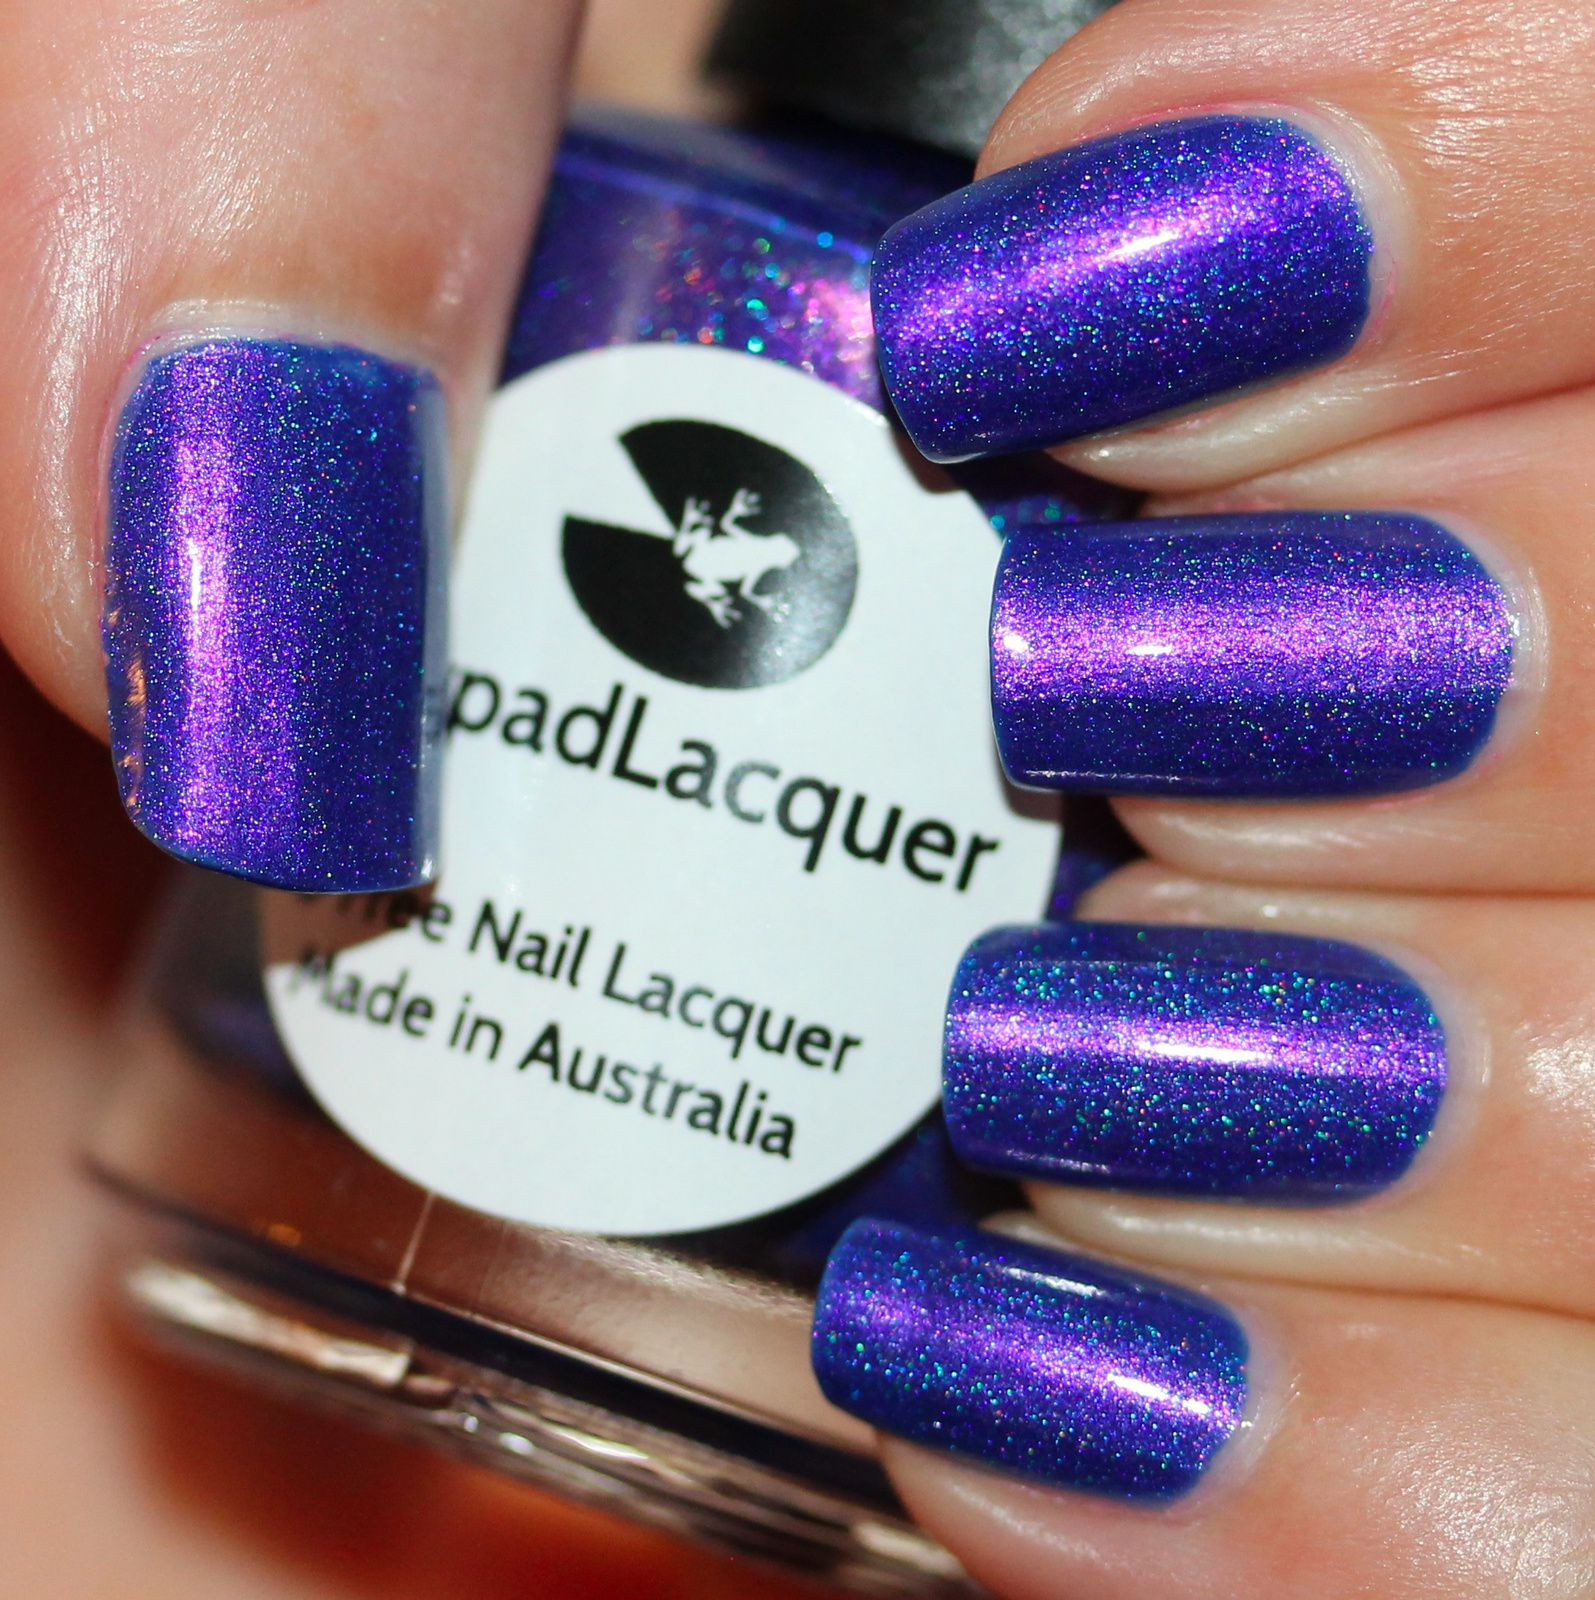 Lilypad Lacquer First Base / Lilypad Lacquer Supernatural / Lilypad Lacquer Crystal Clear Top Coat